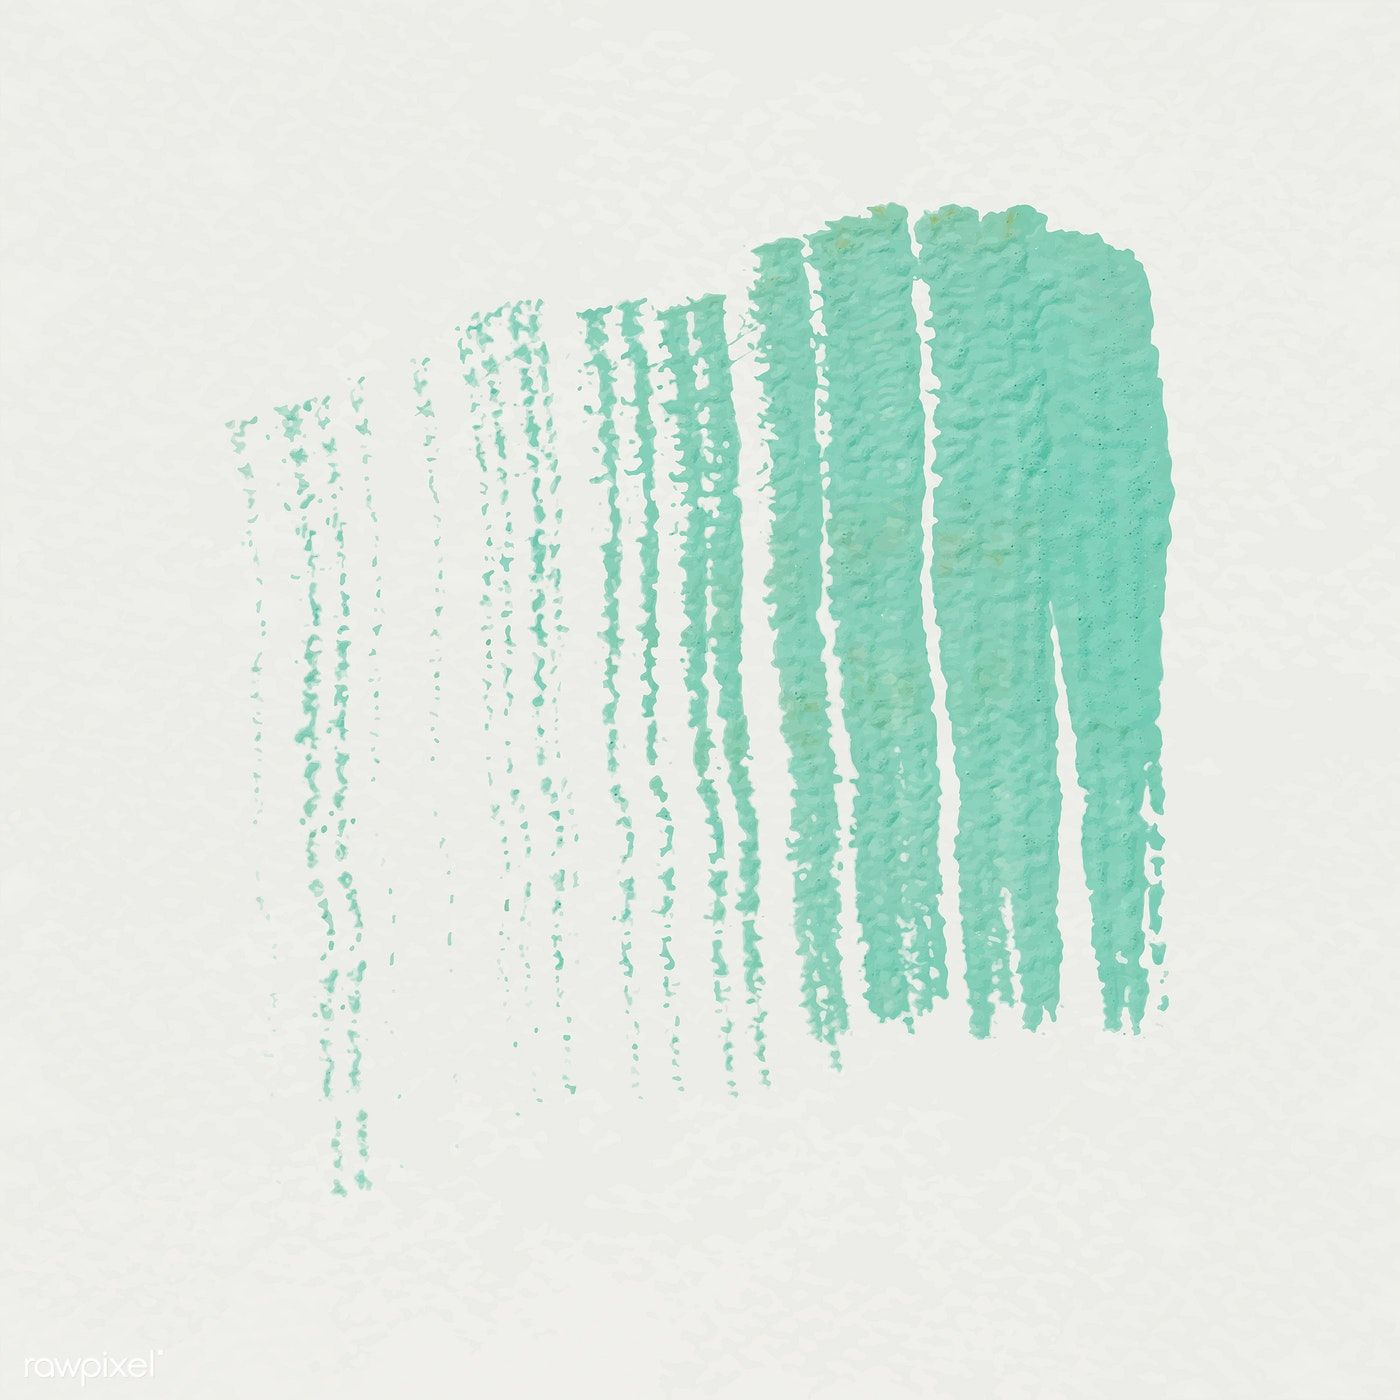 Green acrylic brush stroke vector free image by rawpixel